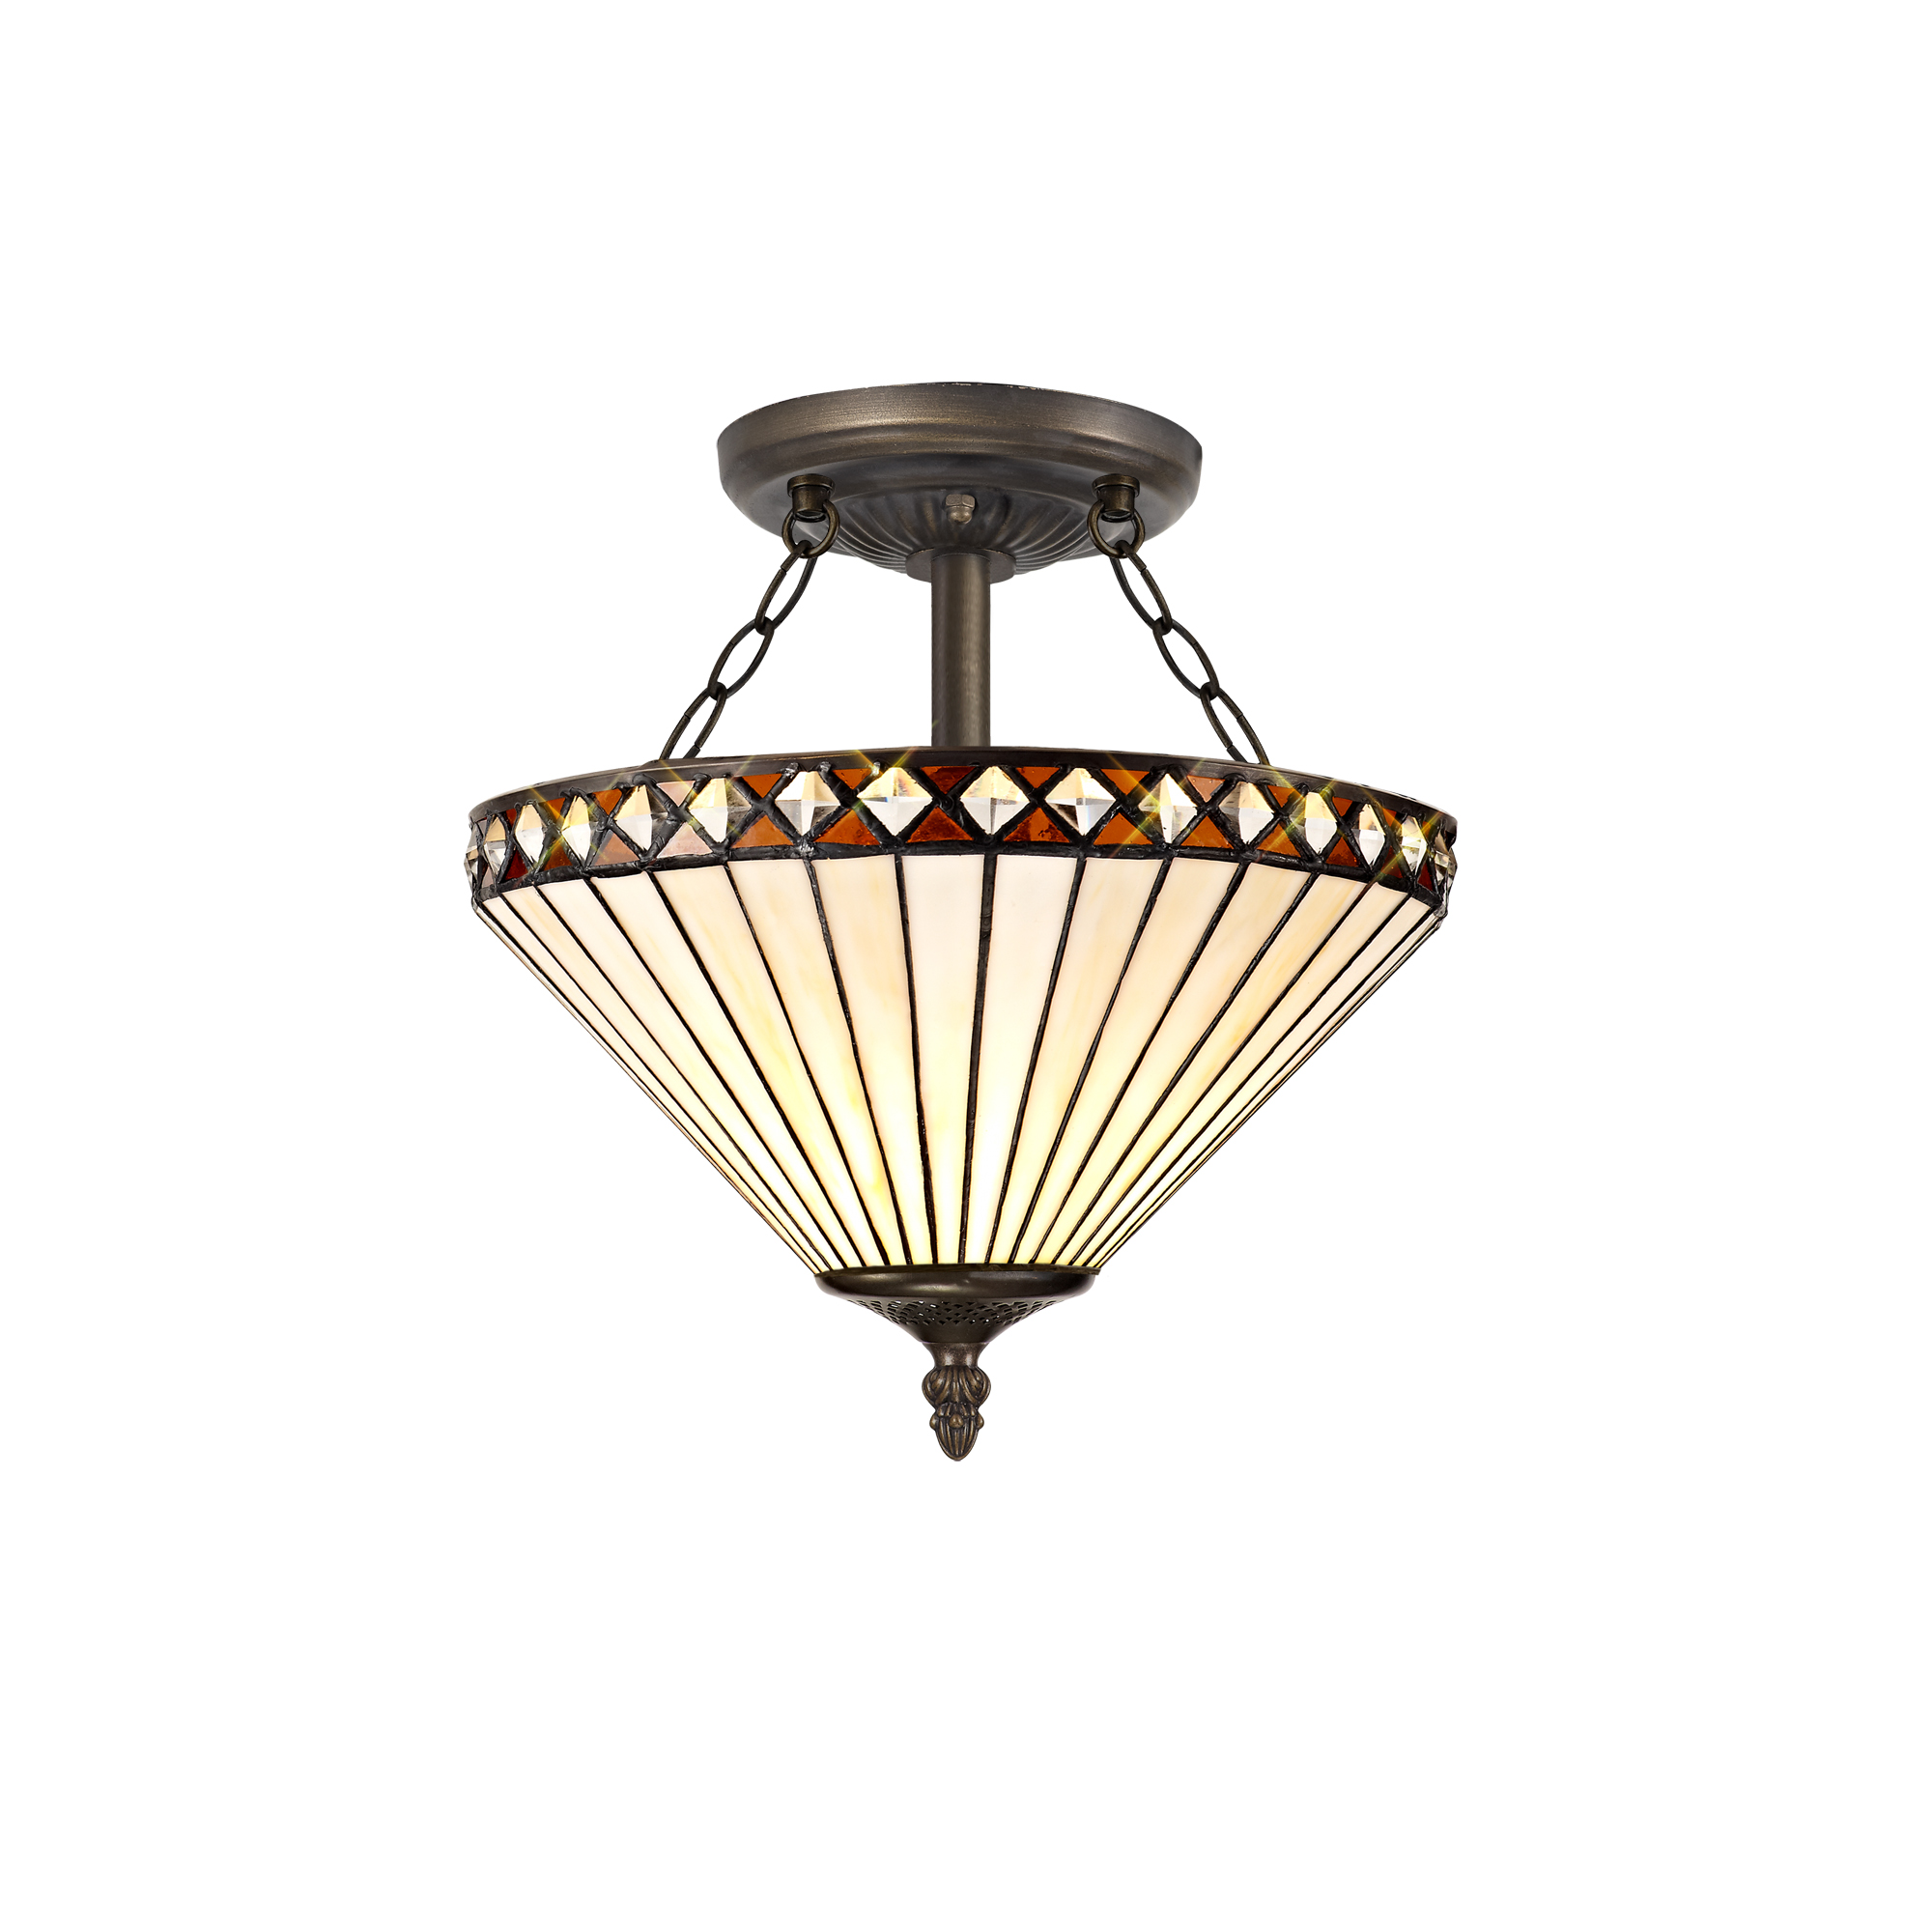 2 Light Semi Ceiling E27 With 30cm Tiffany Shade, Amber/C/Crystal/Aged Antique Brass